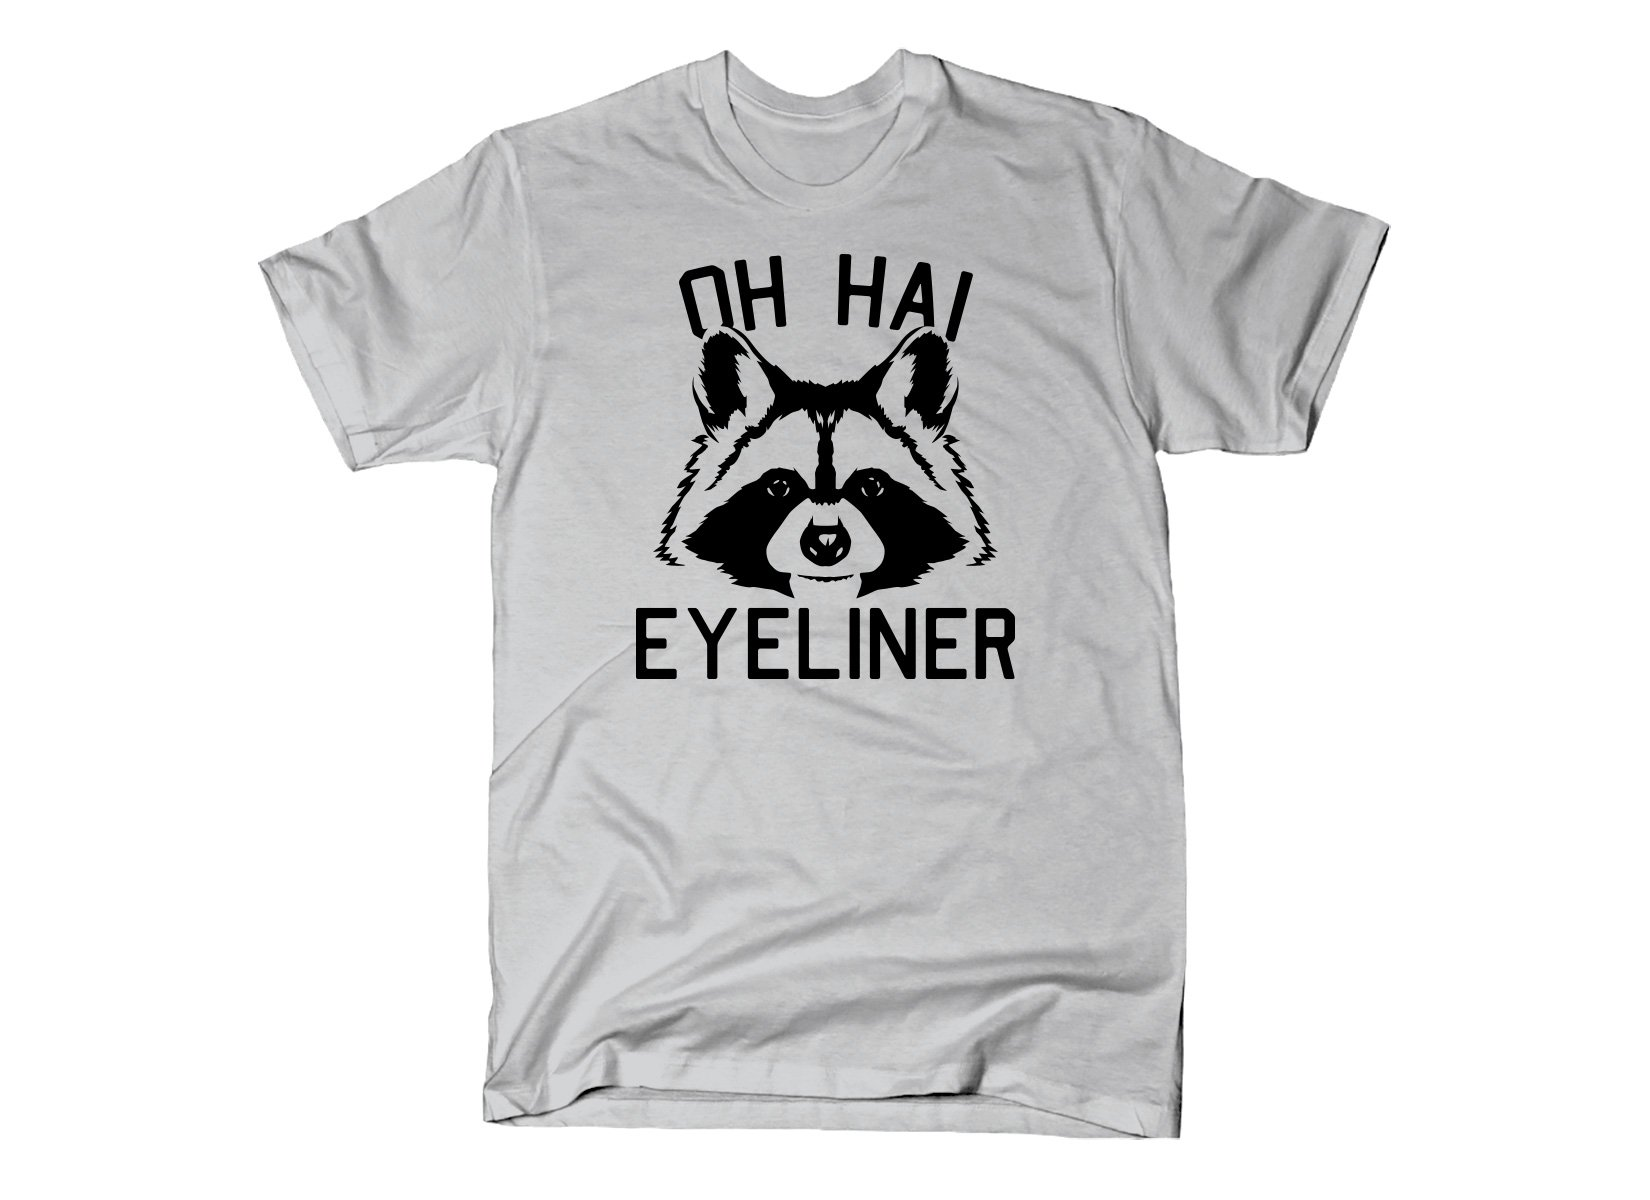 Oh Hai Eyeliner on Mens T-Shirt